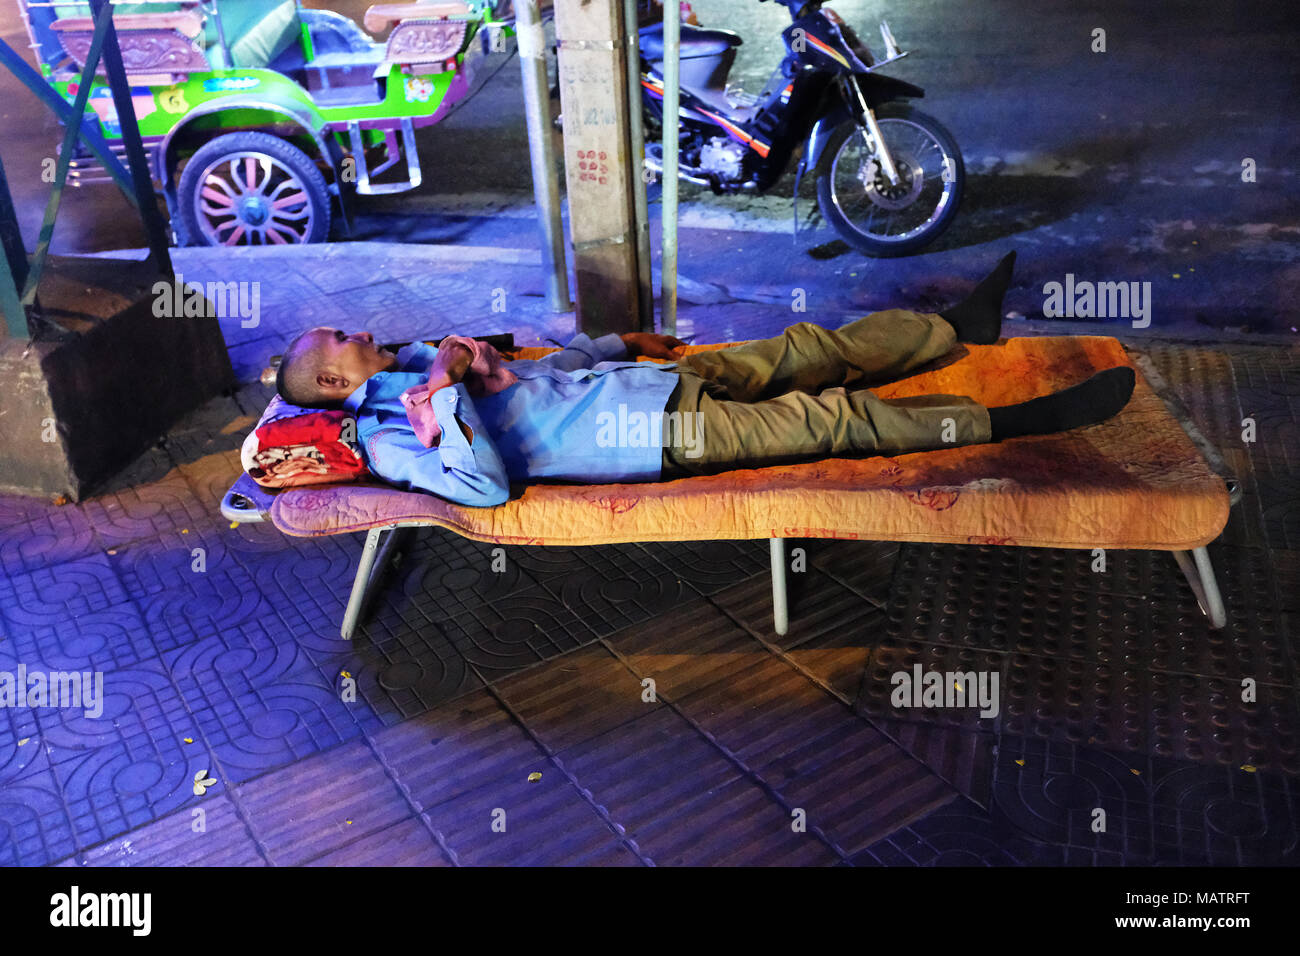 Having a well earned rest - Stock Image